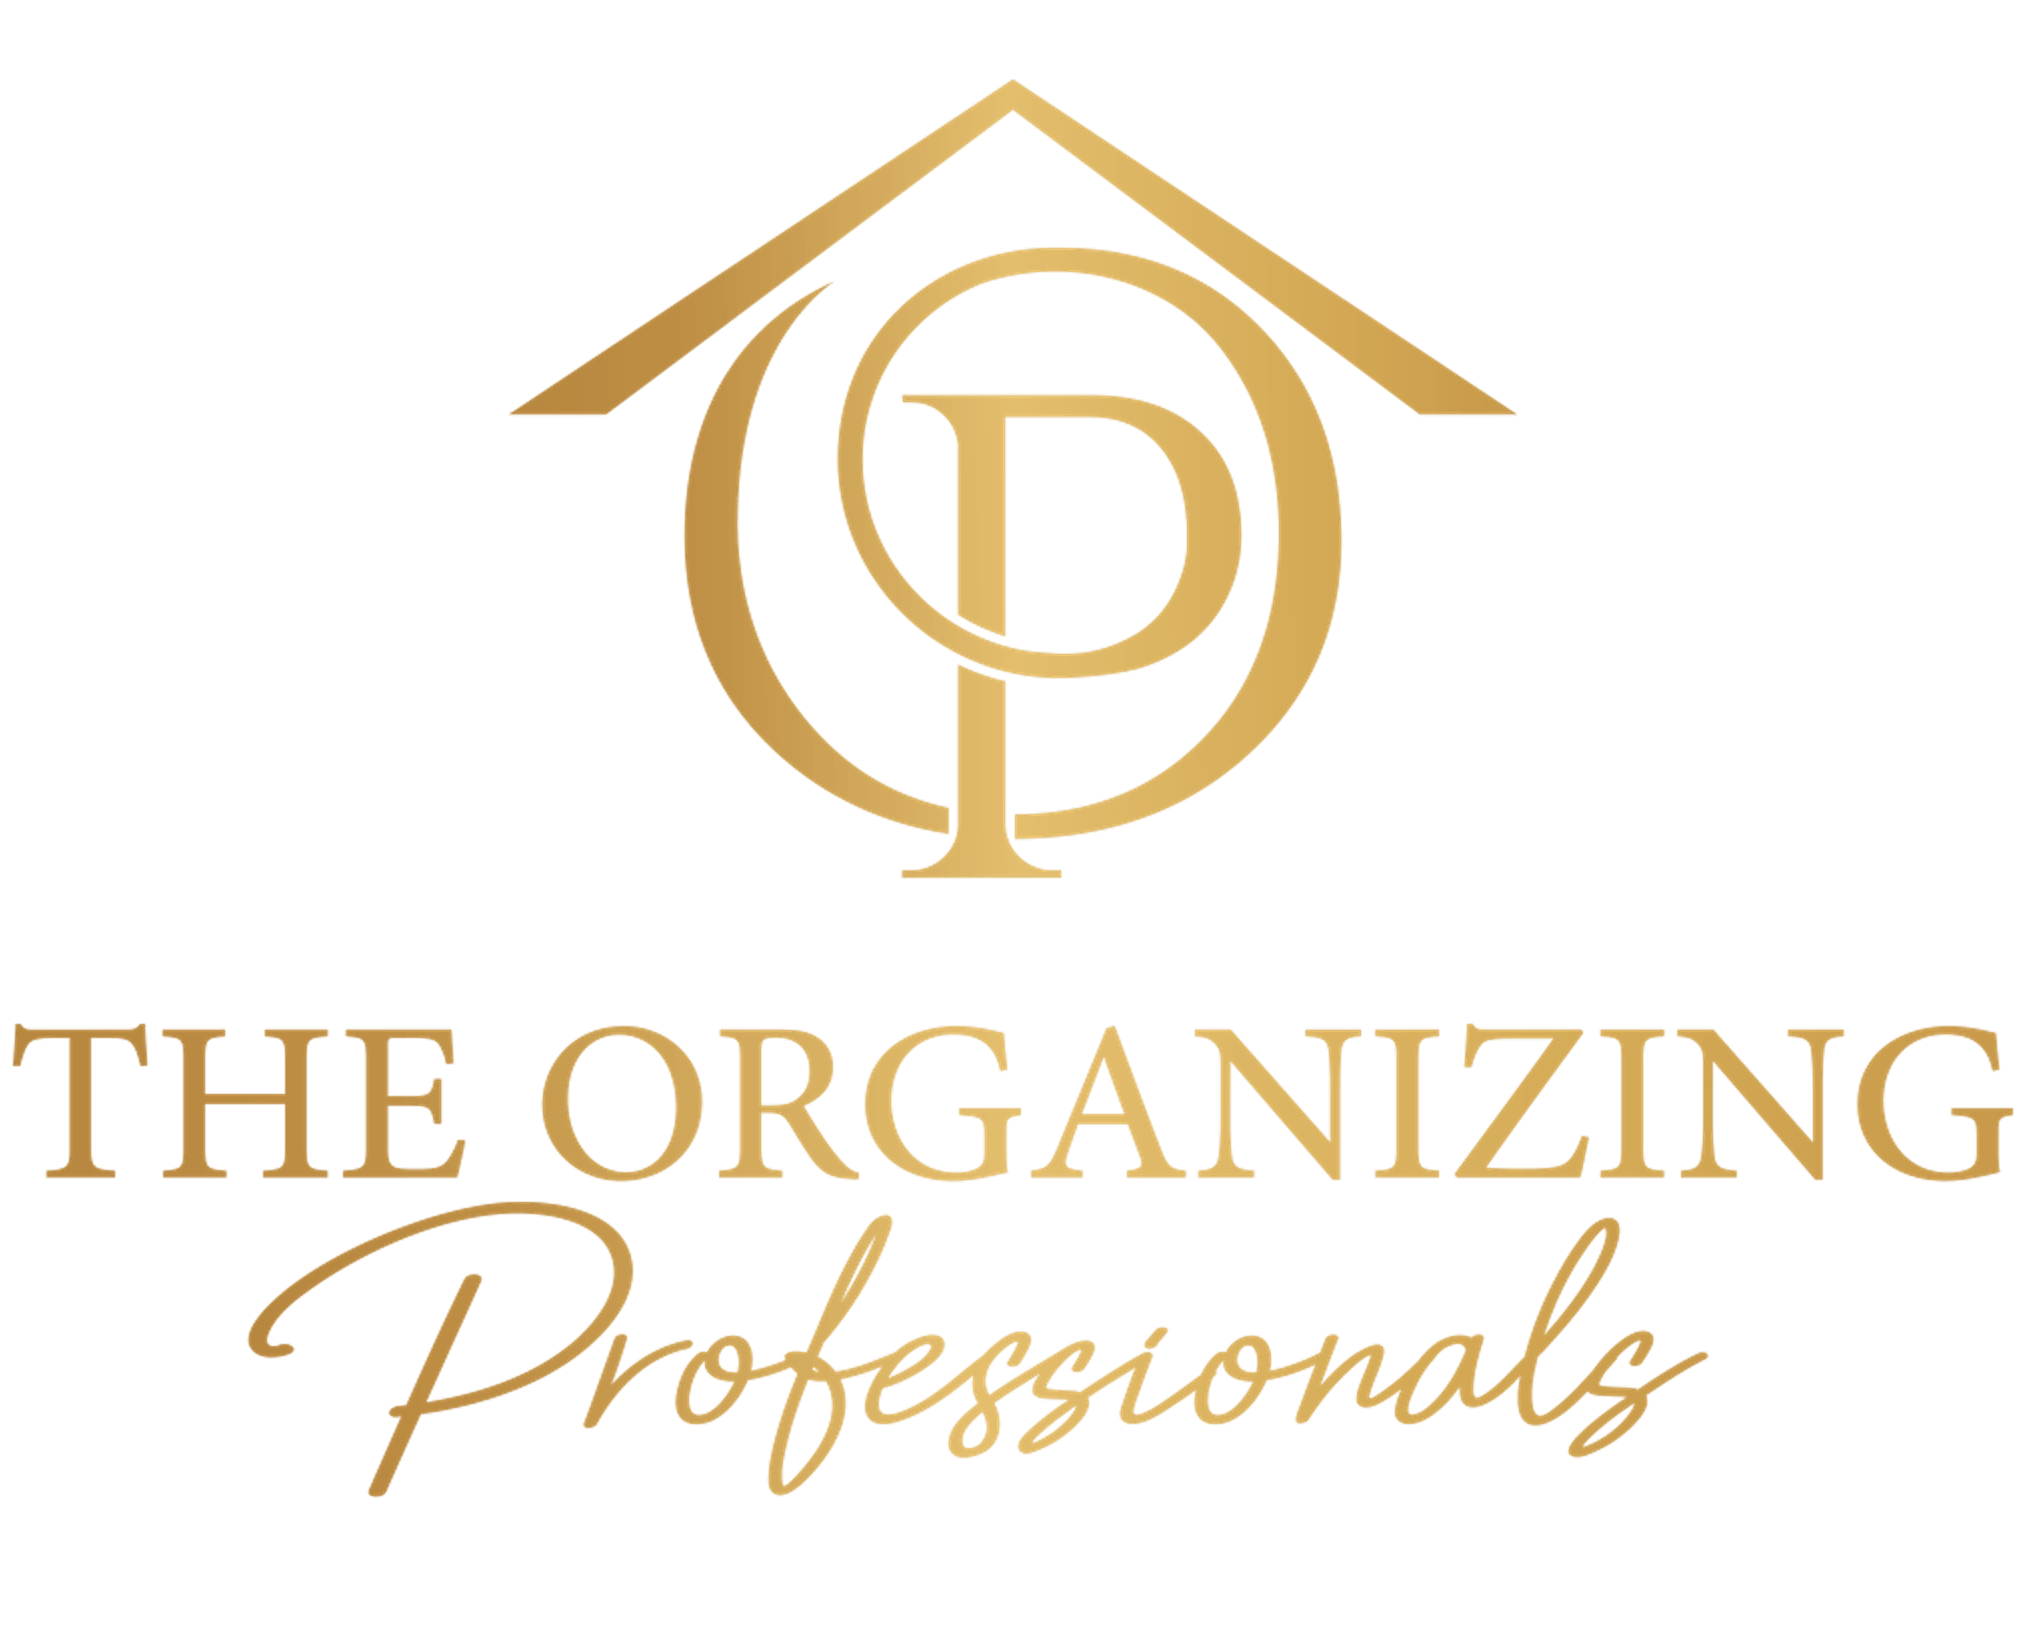 The Organizing Professionals